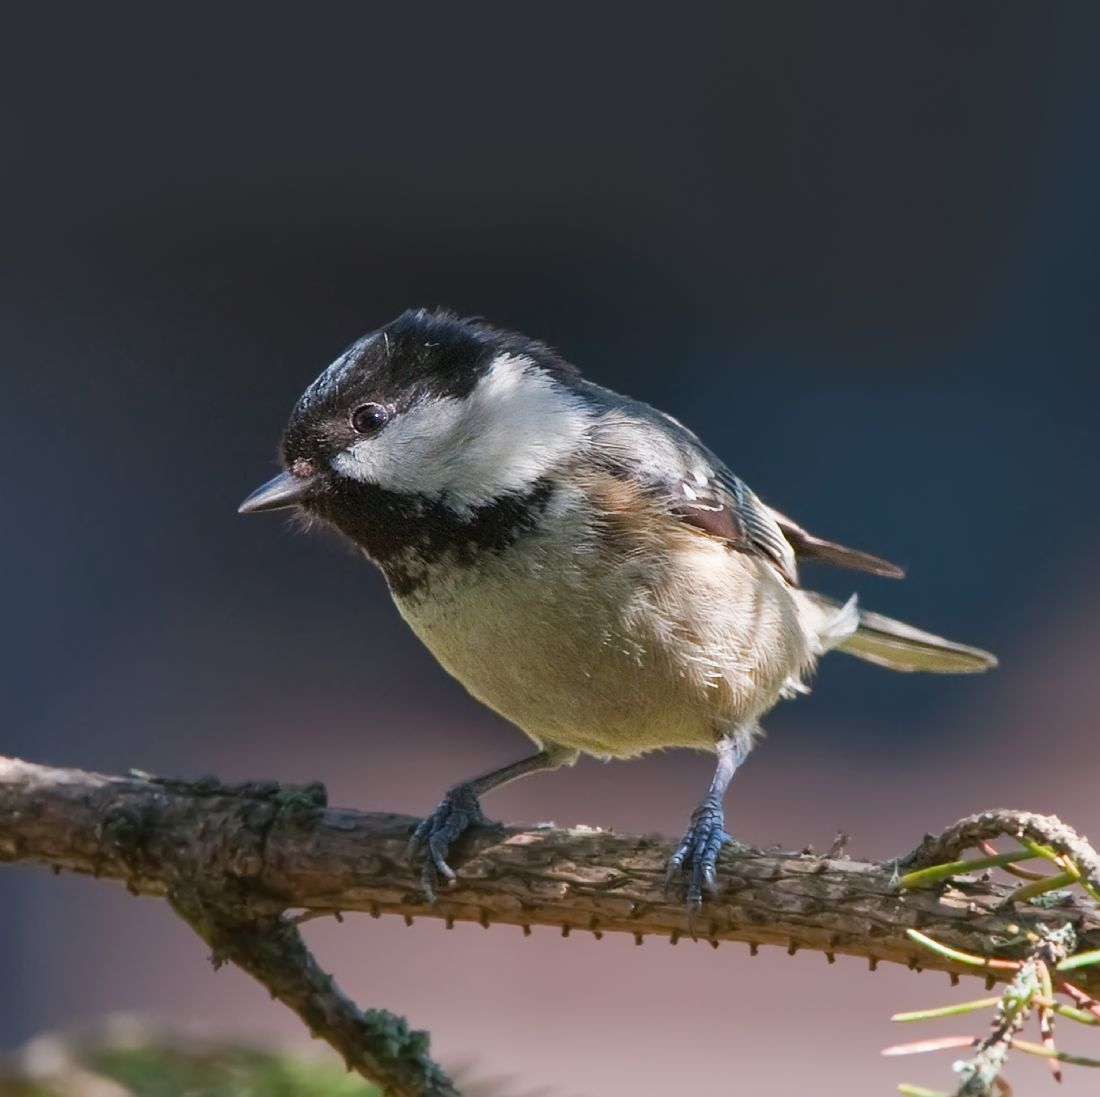 Tom Dolezal | Dapple lit Coal Tit